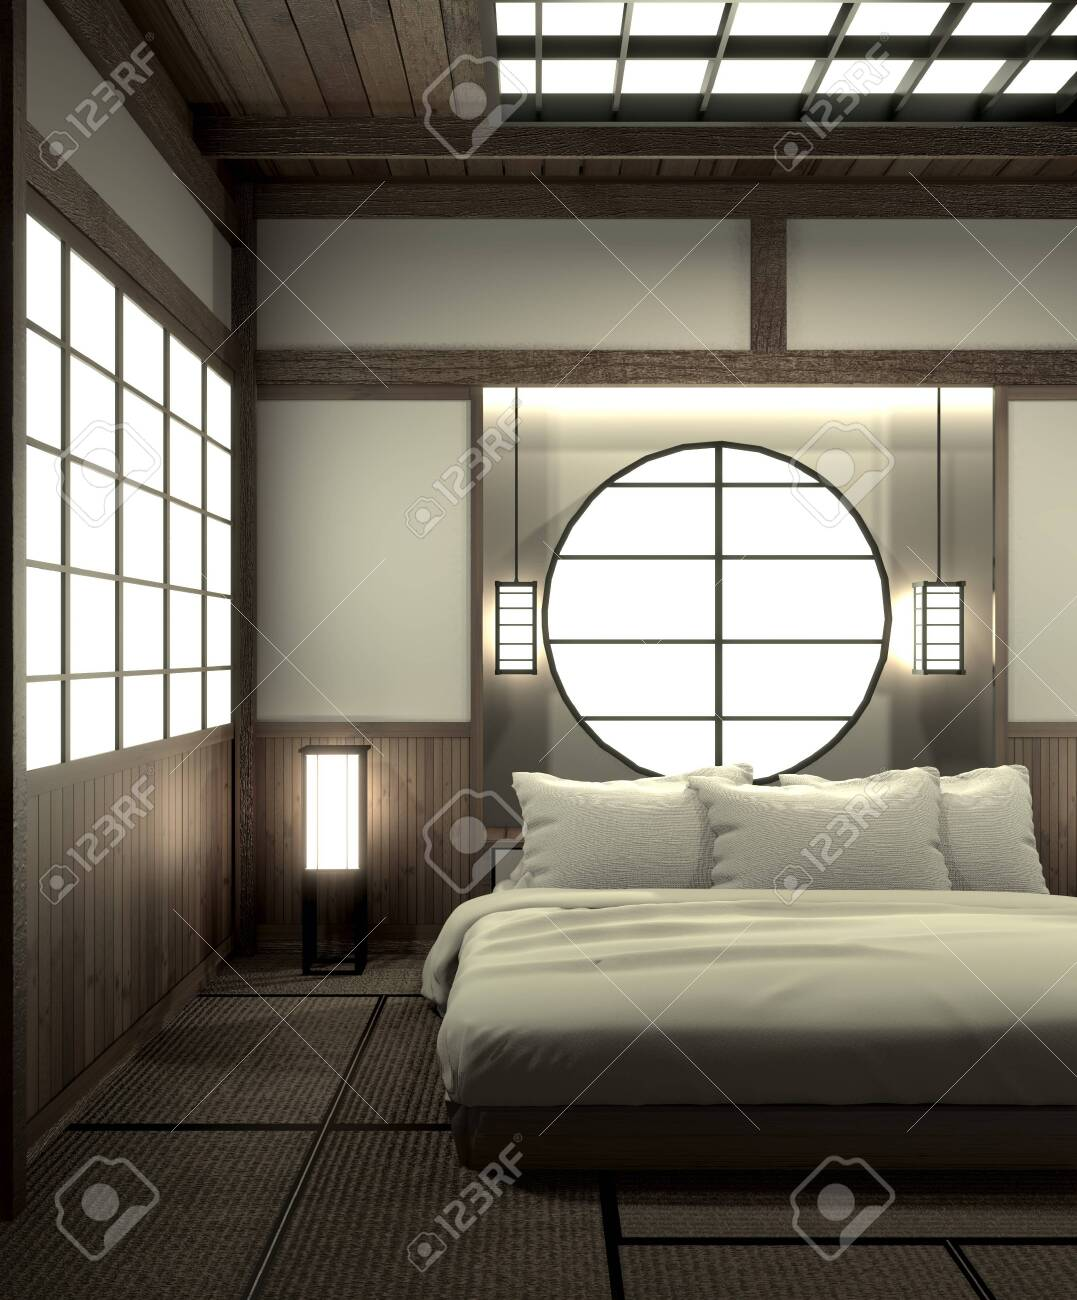 Modern Japanese Bedroom : modern, japanese, bedroom, Bedroom, Modern, Interior, Design, Decoration, Japanese, Style.3D.., Stock, Photo,, Picture, Royalty, Image., Image, 127103871.